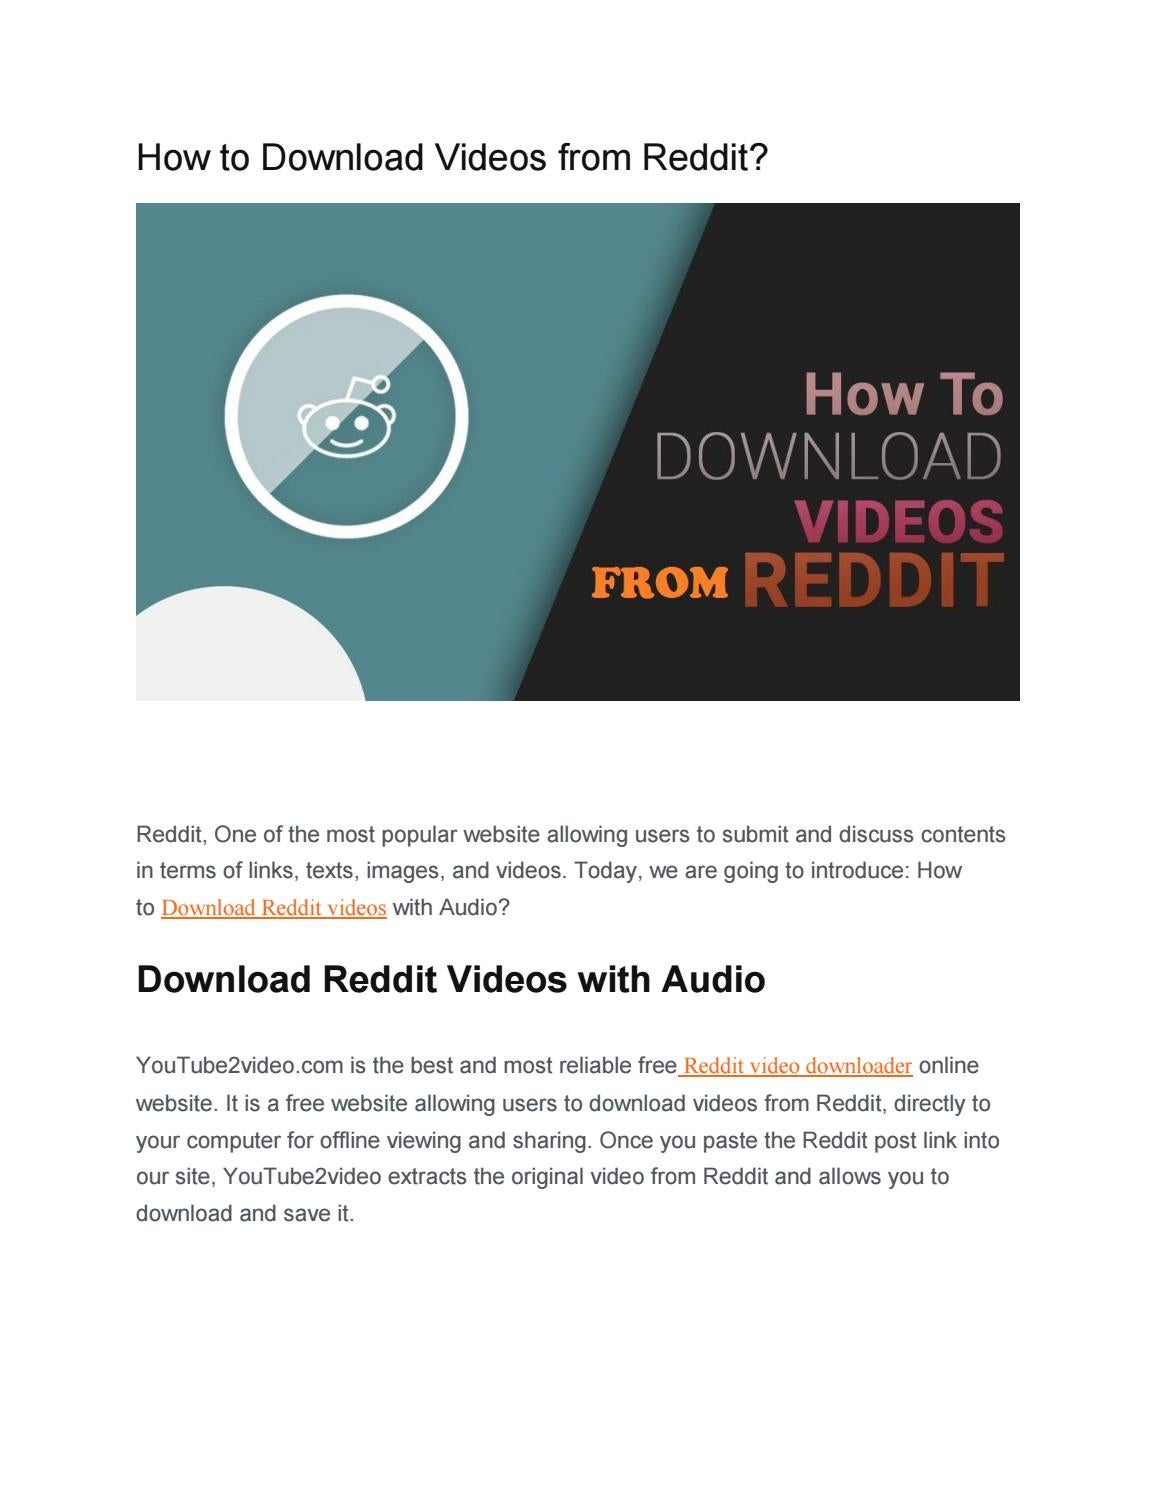 How to Download Videos from Reddit? by YouTube2video - issuu